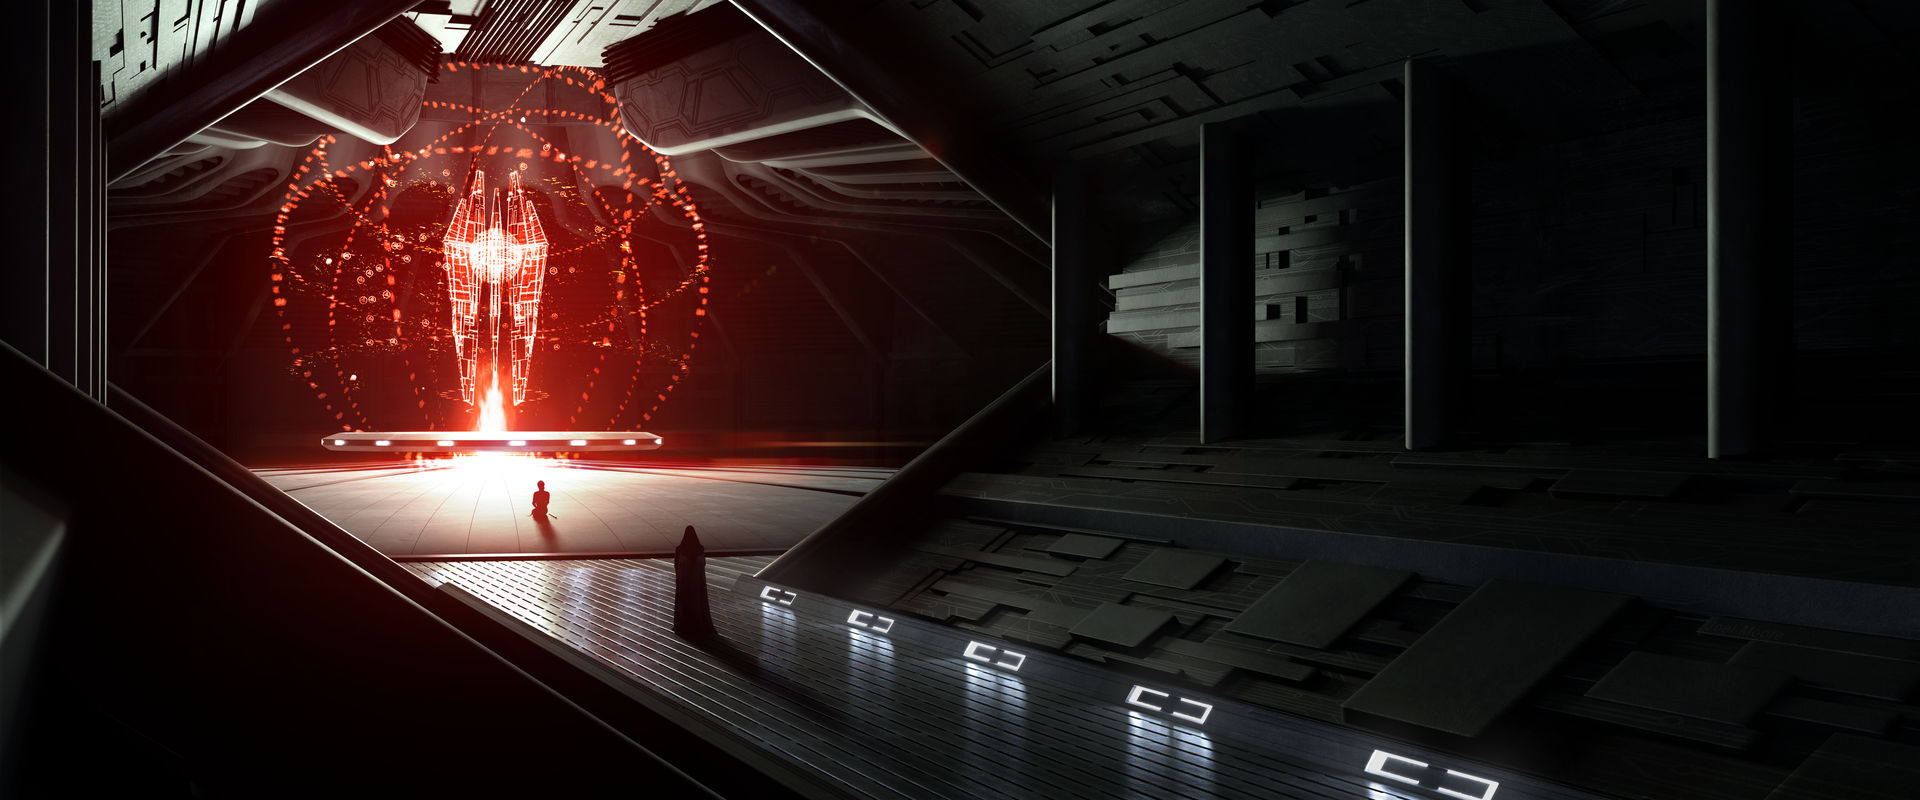 Star Wars Heart Of The Forge 4k By Thetechromancer On Deviantart